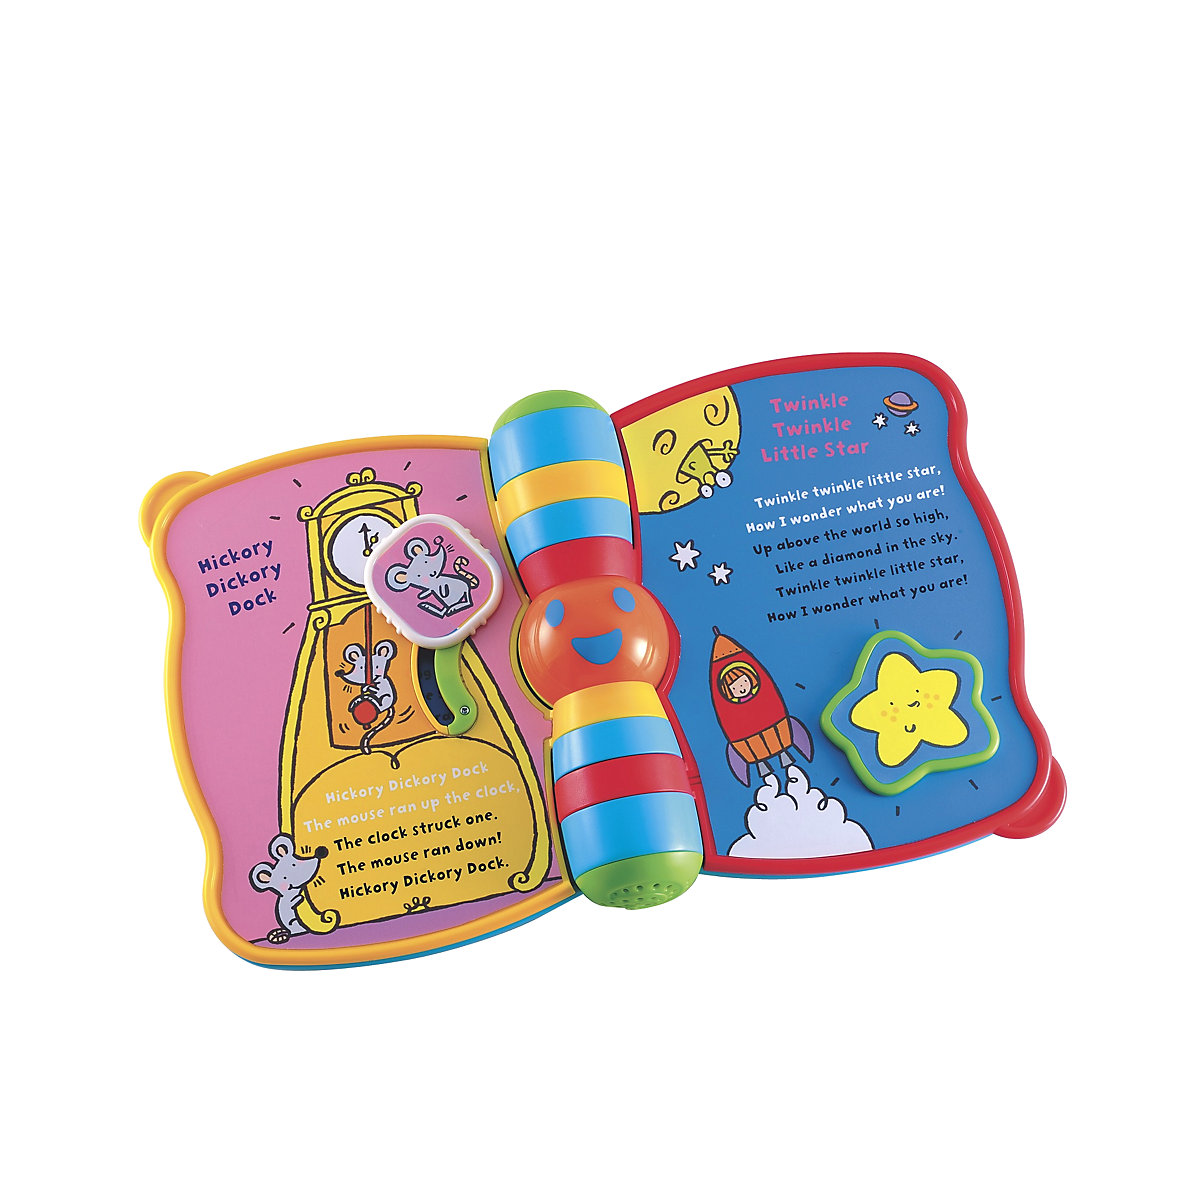 New ELC Boys and Girls Singing Nursery Rhyme Book Toy From 6 months - Nursery Gifts